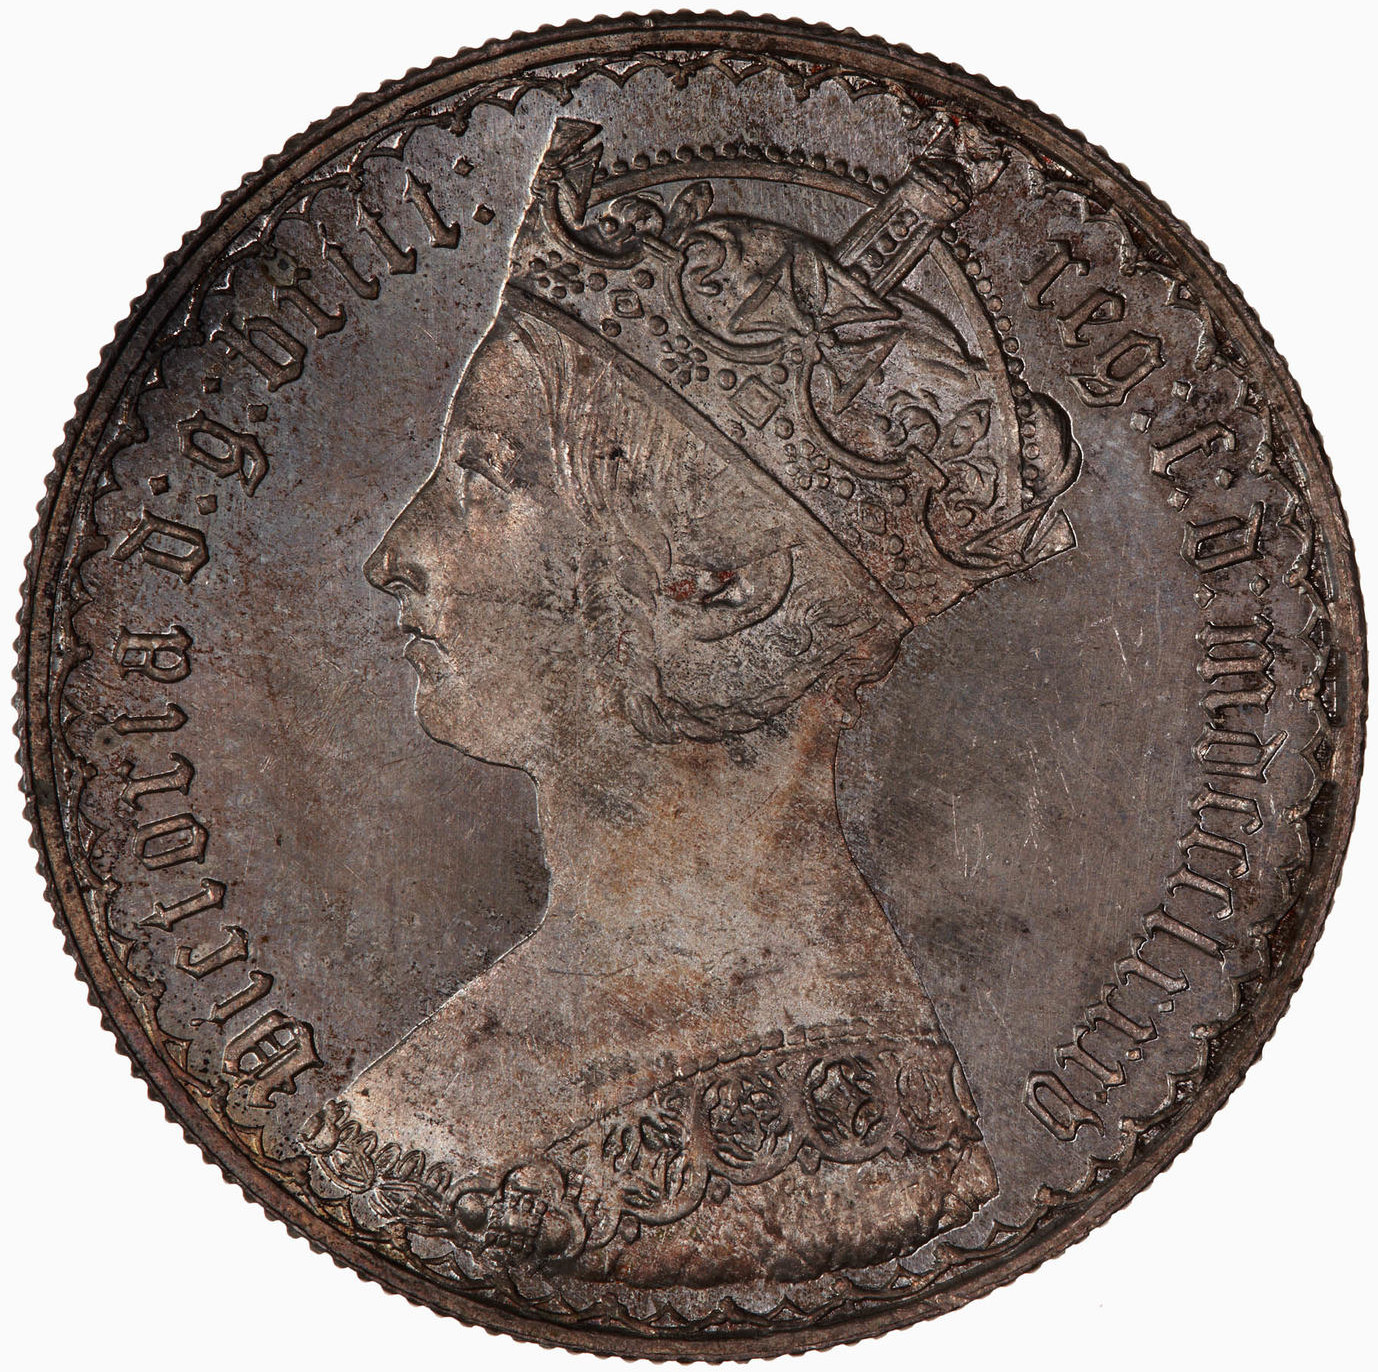 Florin 1885: Photo Coin - Florin, Queen Victoria, Great Britain, 1885